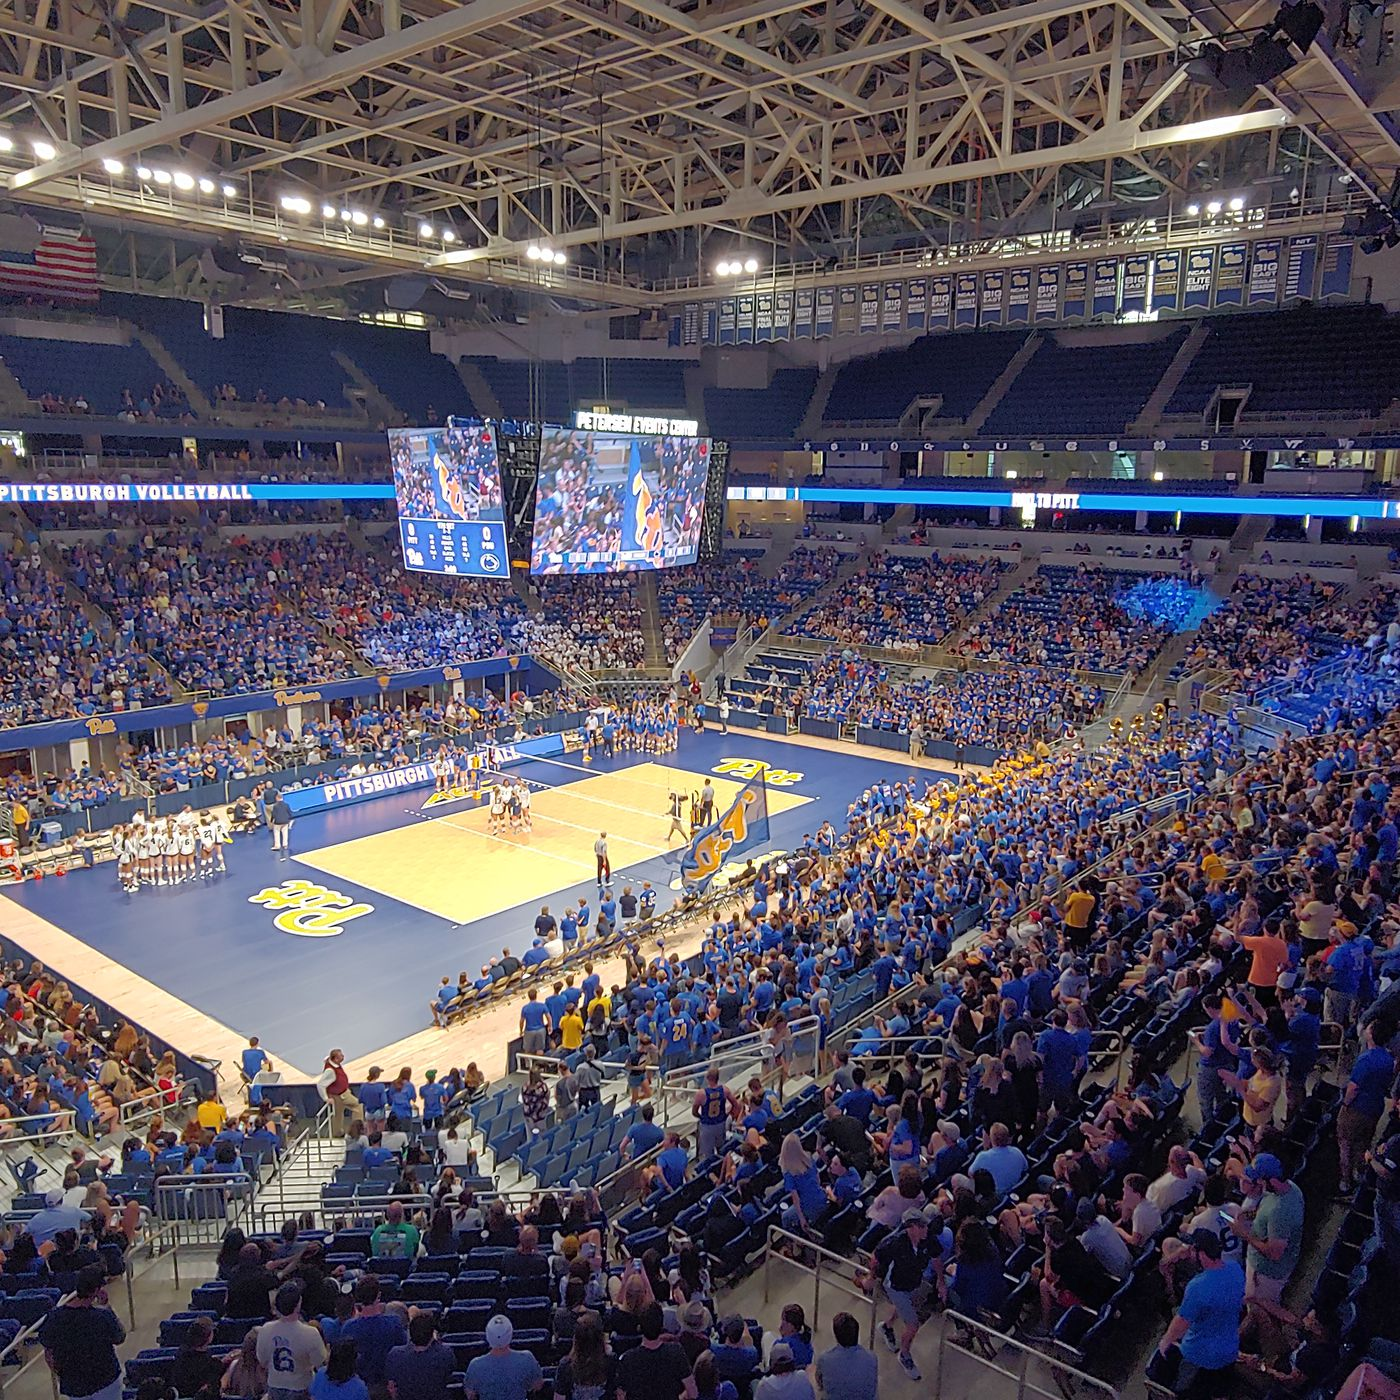 Pitt Volleyball Sets Attendance Record With Penn State Match